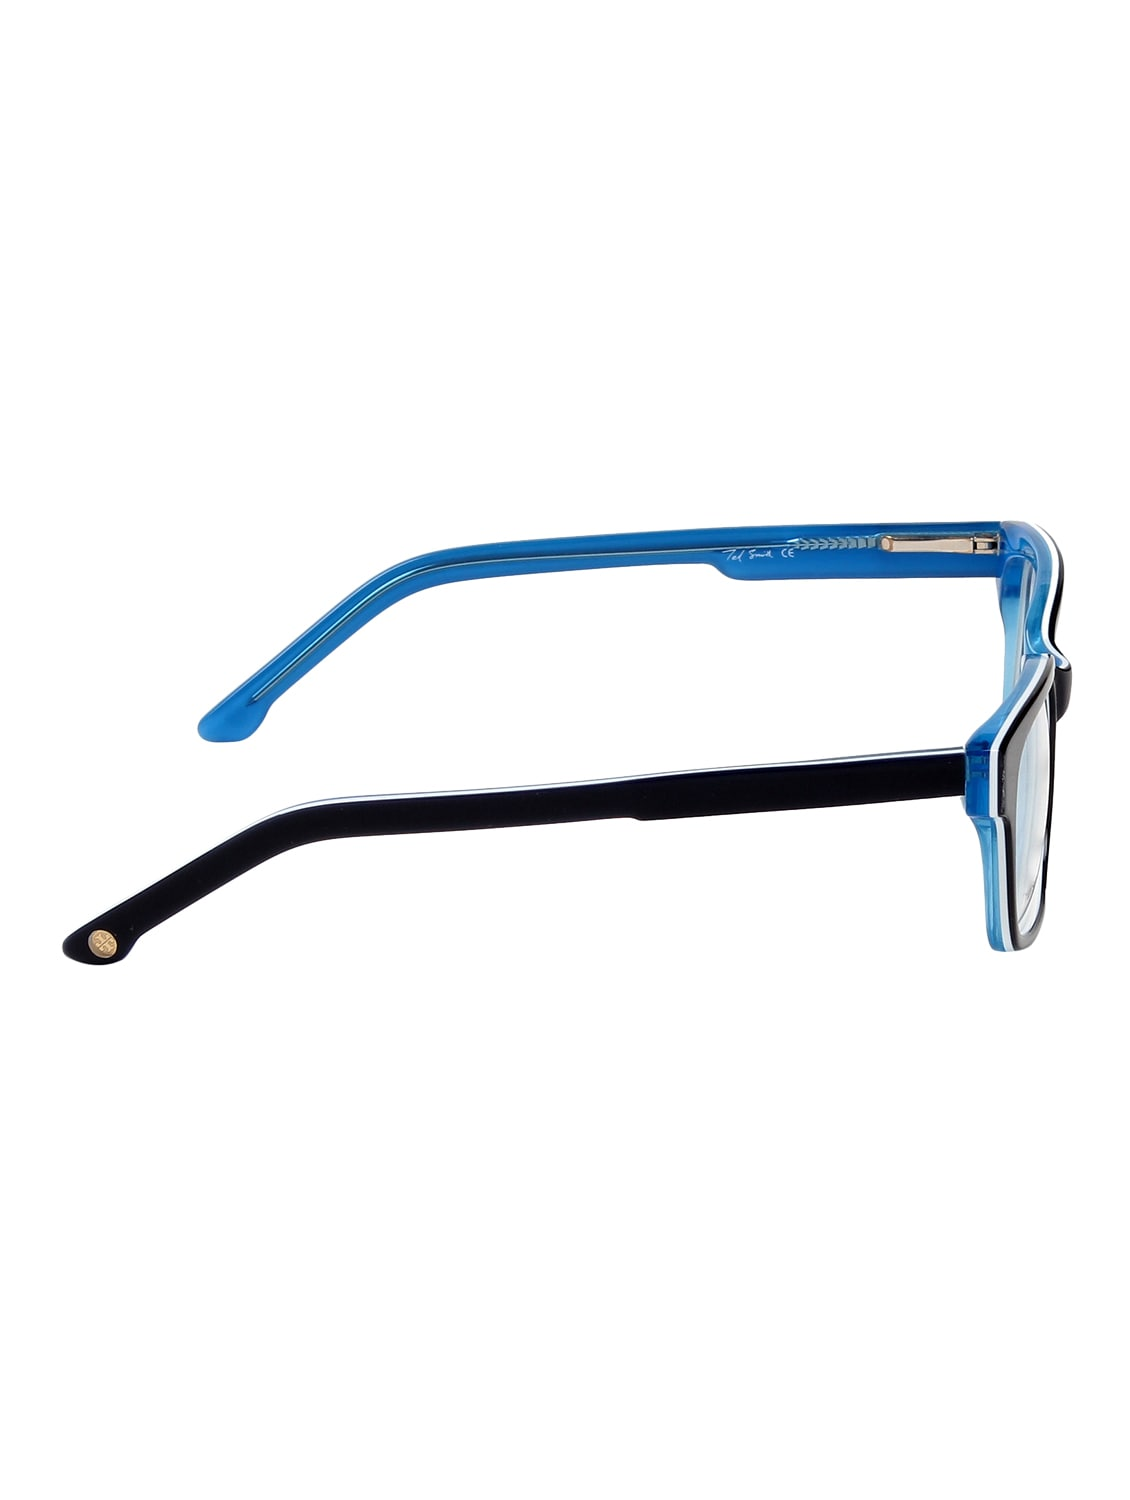 89986b50fb Buy Ted Smith Men Wayfarer Frames (ts-t1001 blk blu) by Ted Smith - Online  shopping for Men Spectacle Frames in India